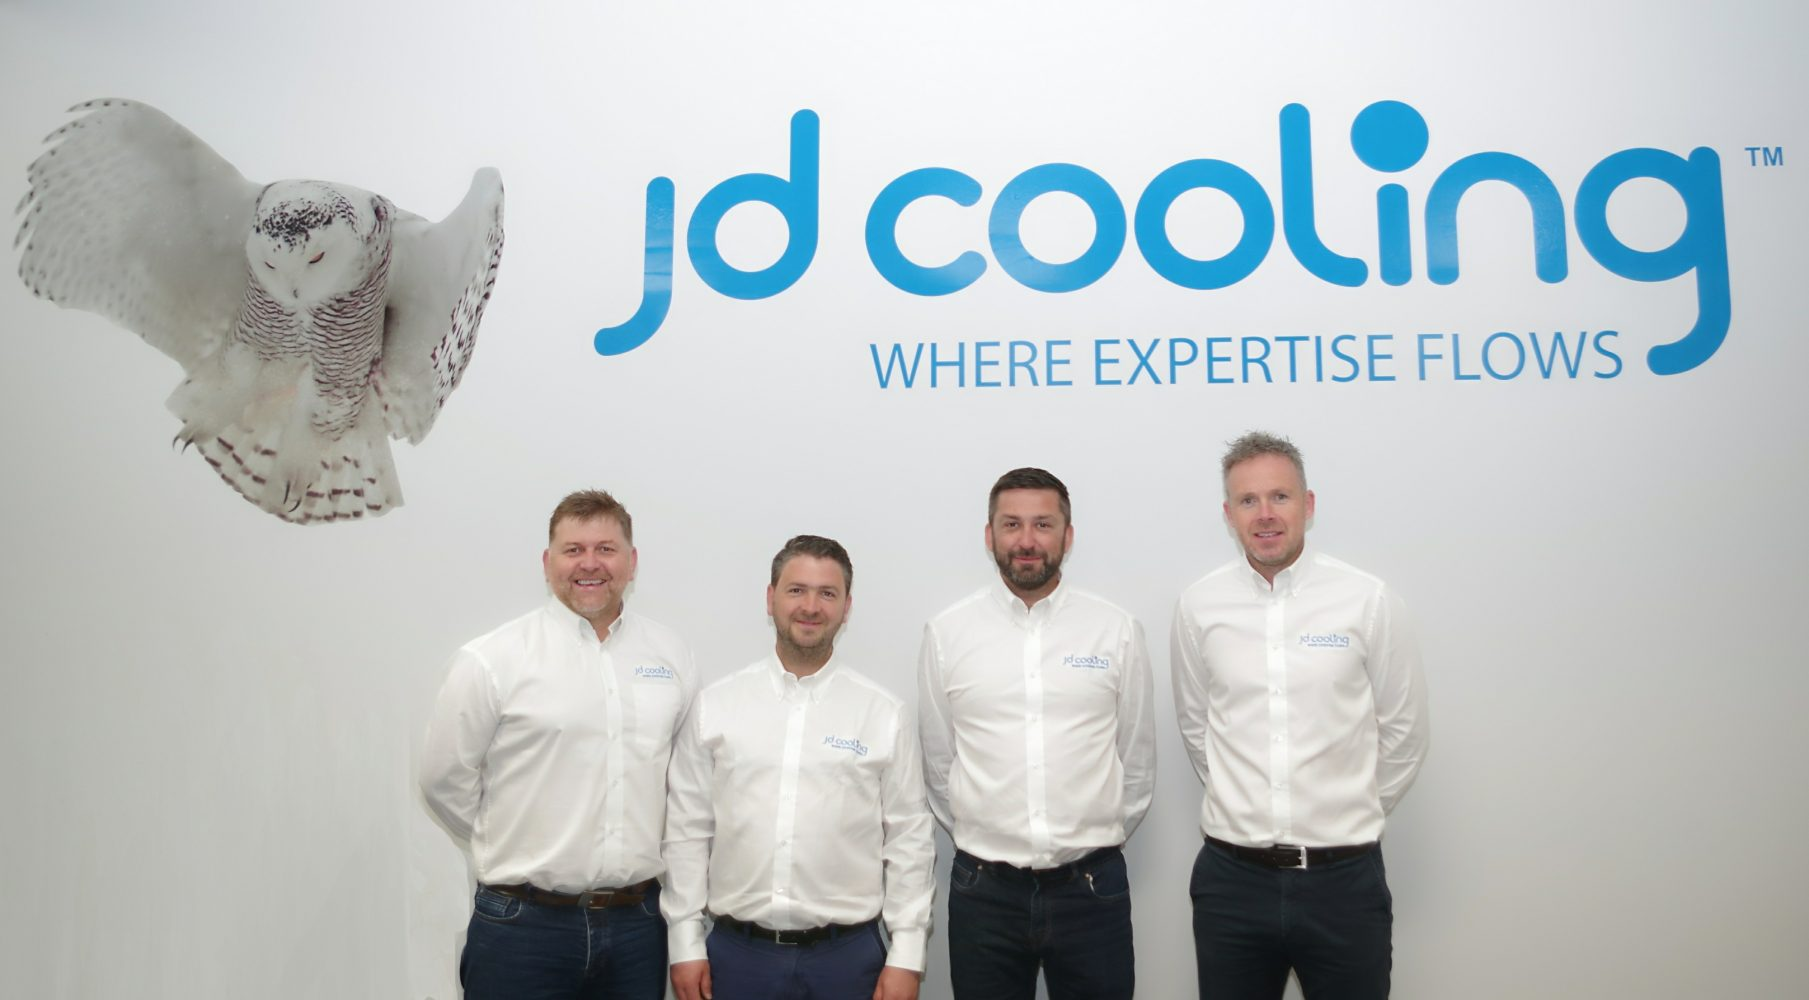 JD Cooling South East – Launch Event - Knowledge factory